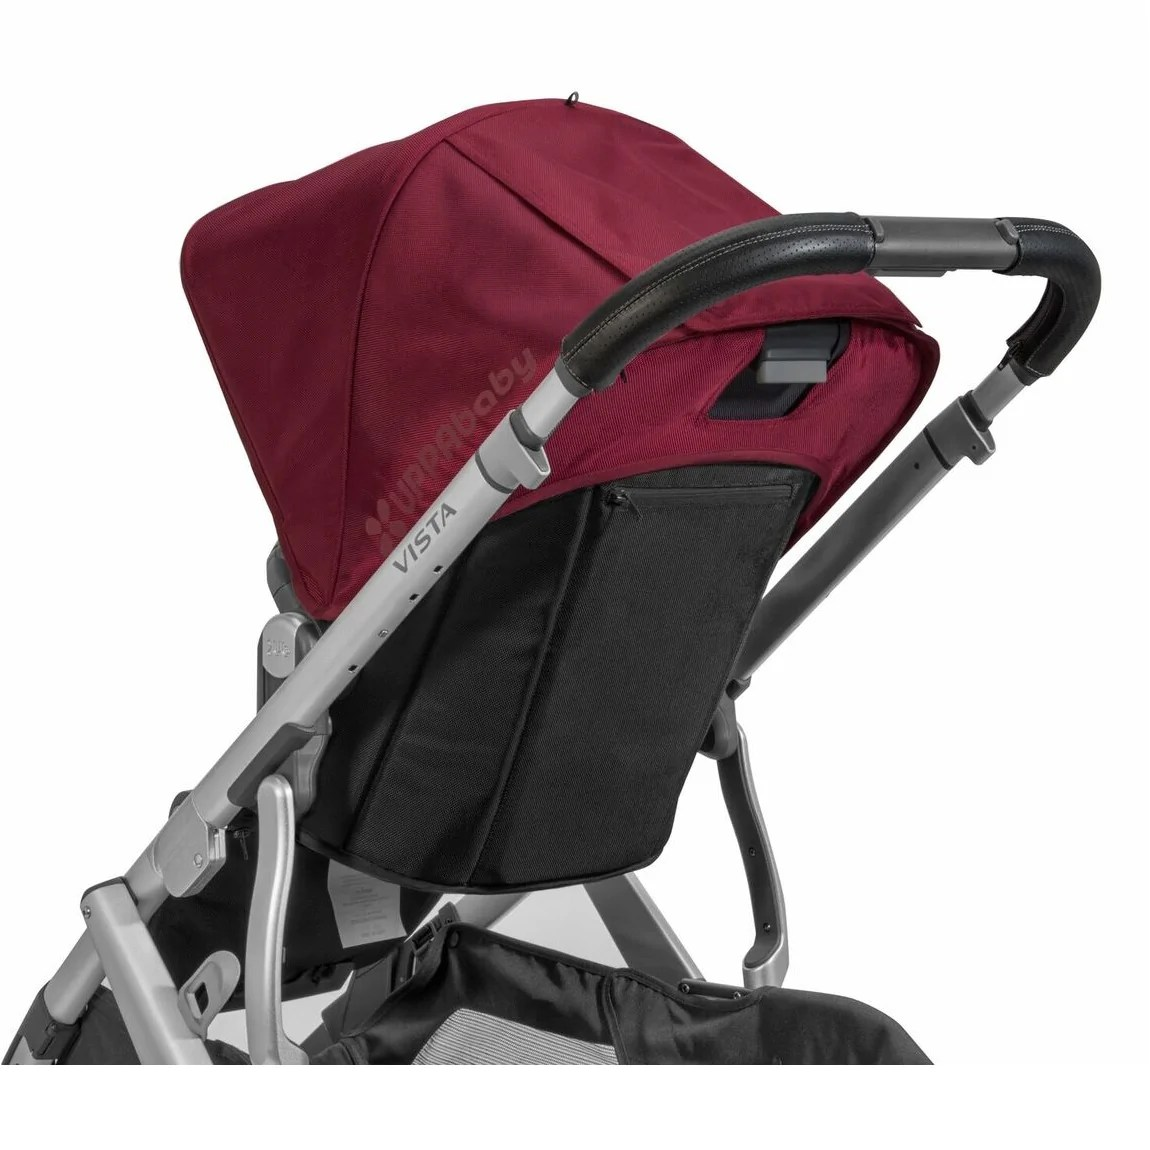 Trendy Black On Vista Stroller Uppababy Vista Lear Handlebar Cover Little Folks Nyc Uppababy Vista Stroller Only Uppababy Vista Stroller Uppababy Vista Lear Handlebar Cover baby Uppababy Vista Stroller